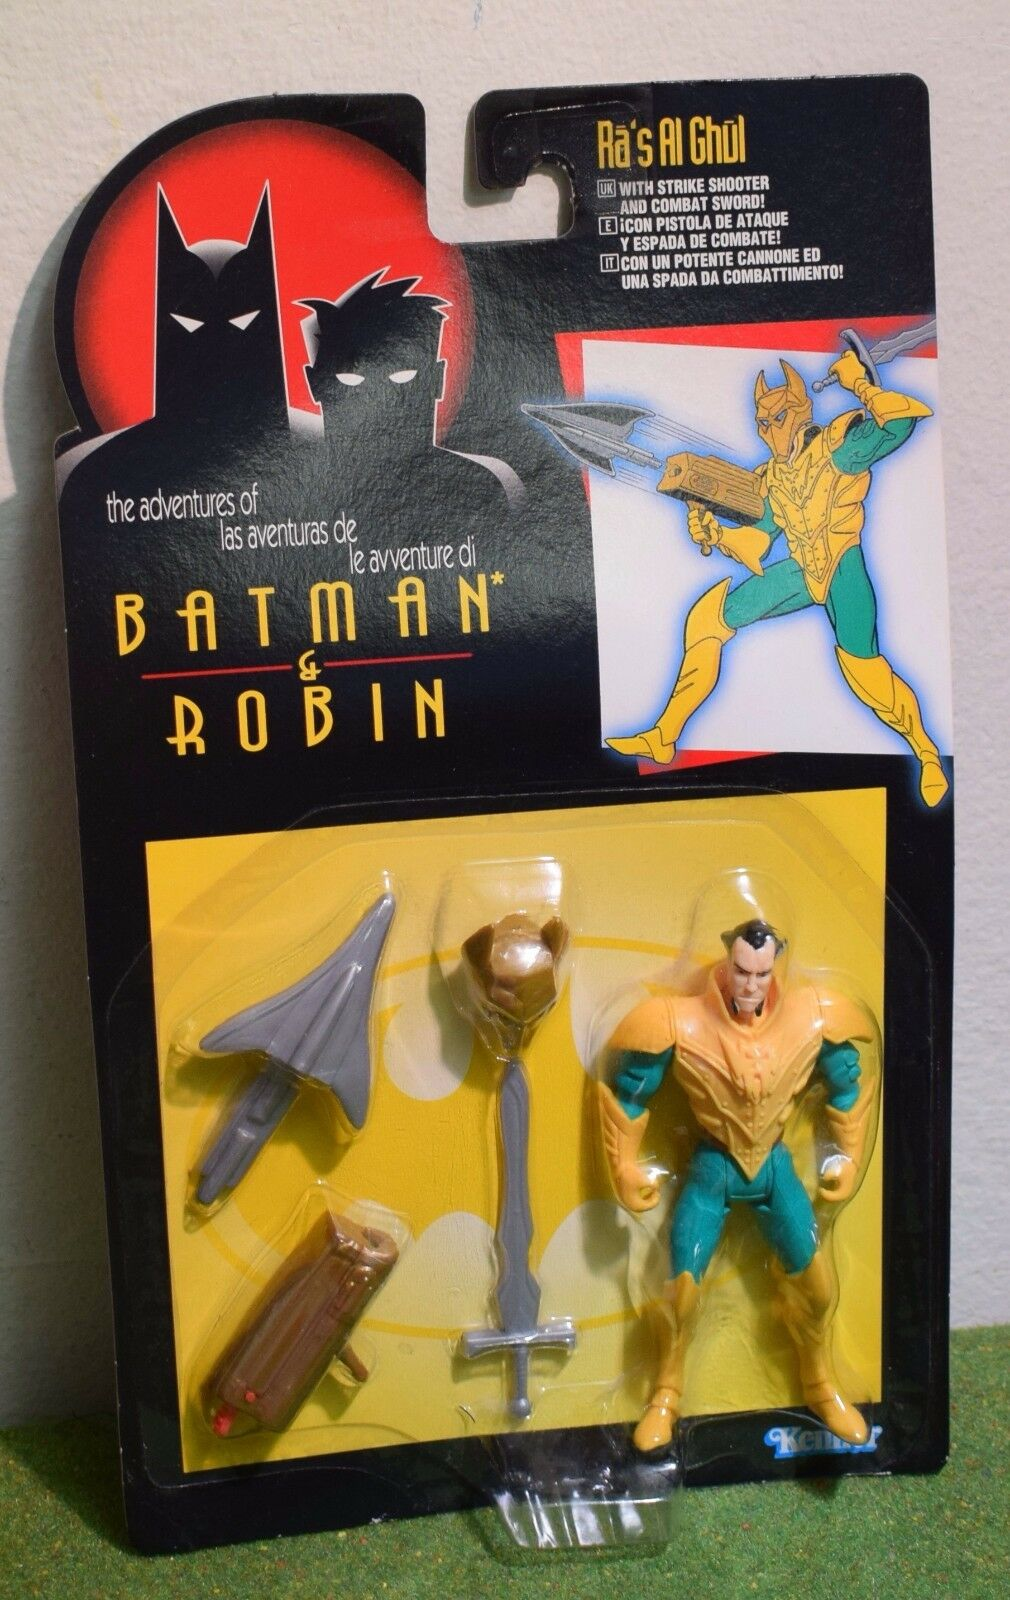 KENNER THE ADVENTURES OF BATMAN & ROBIN RA'S AL GHUL ACTION FIGURE